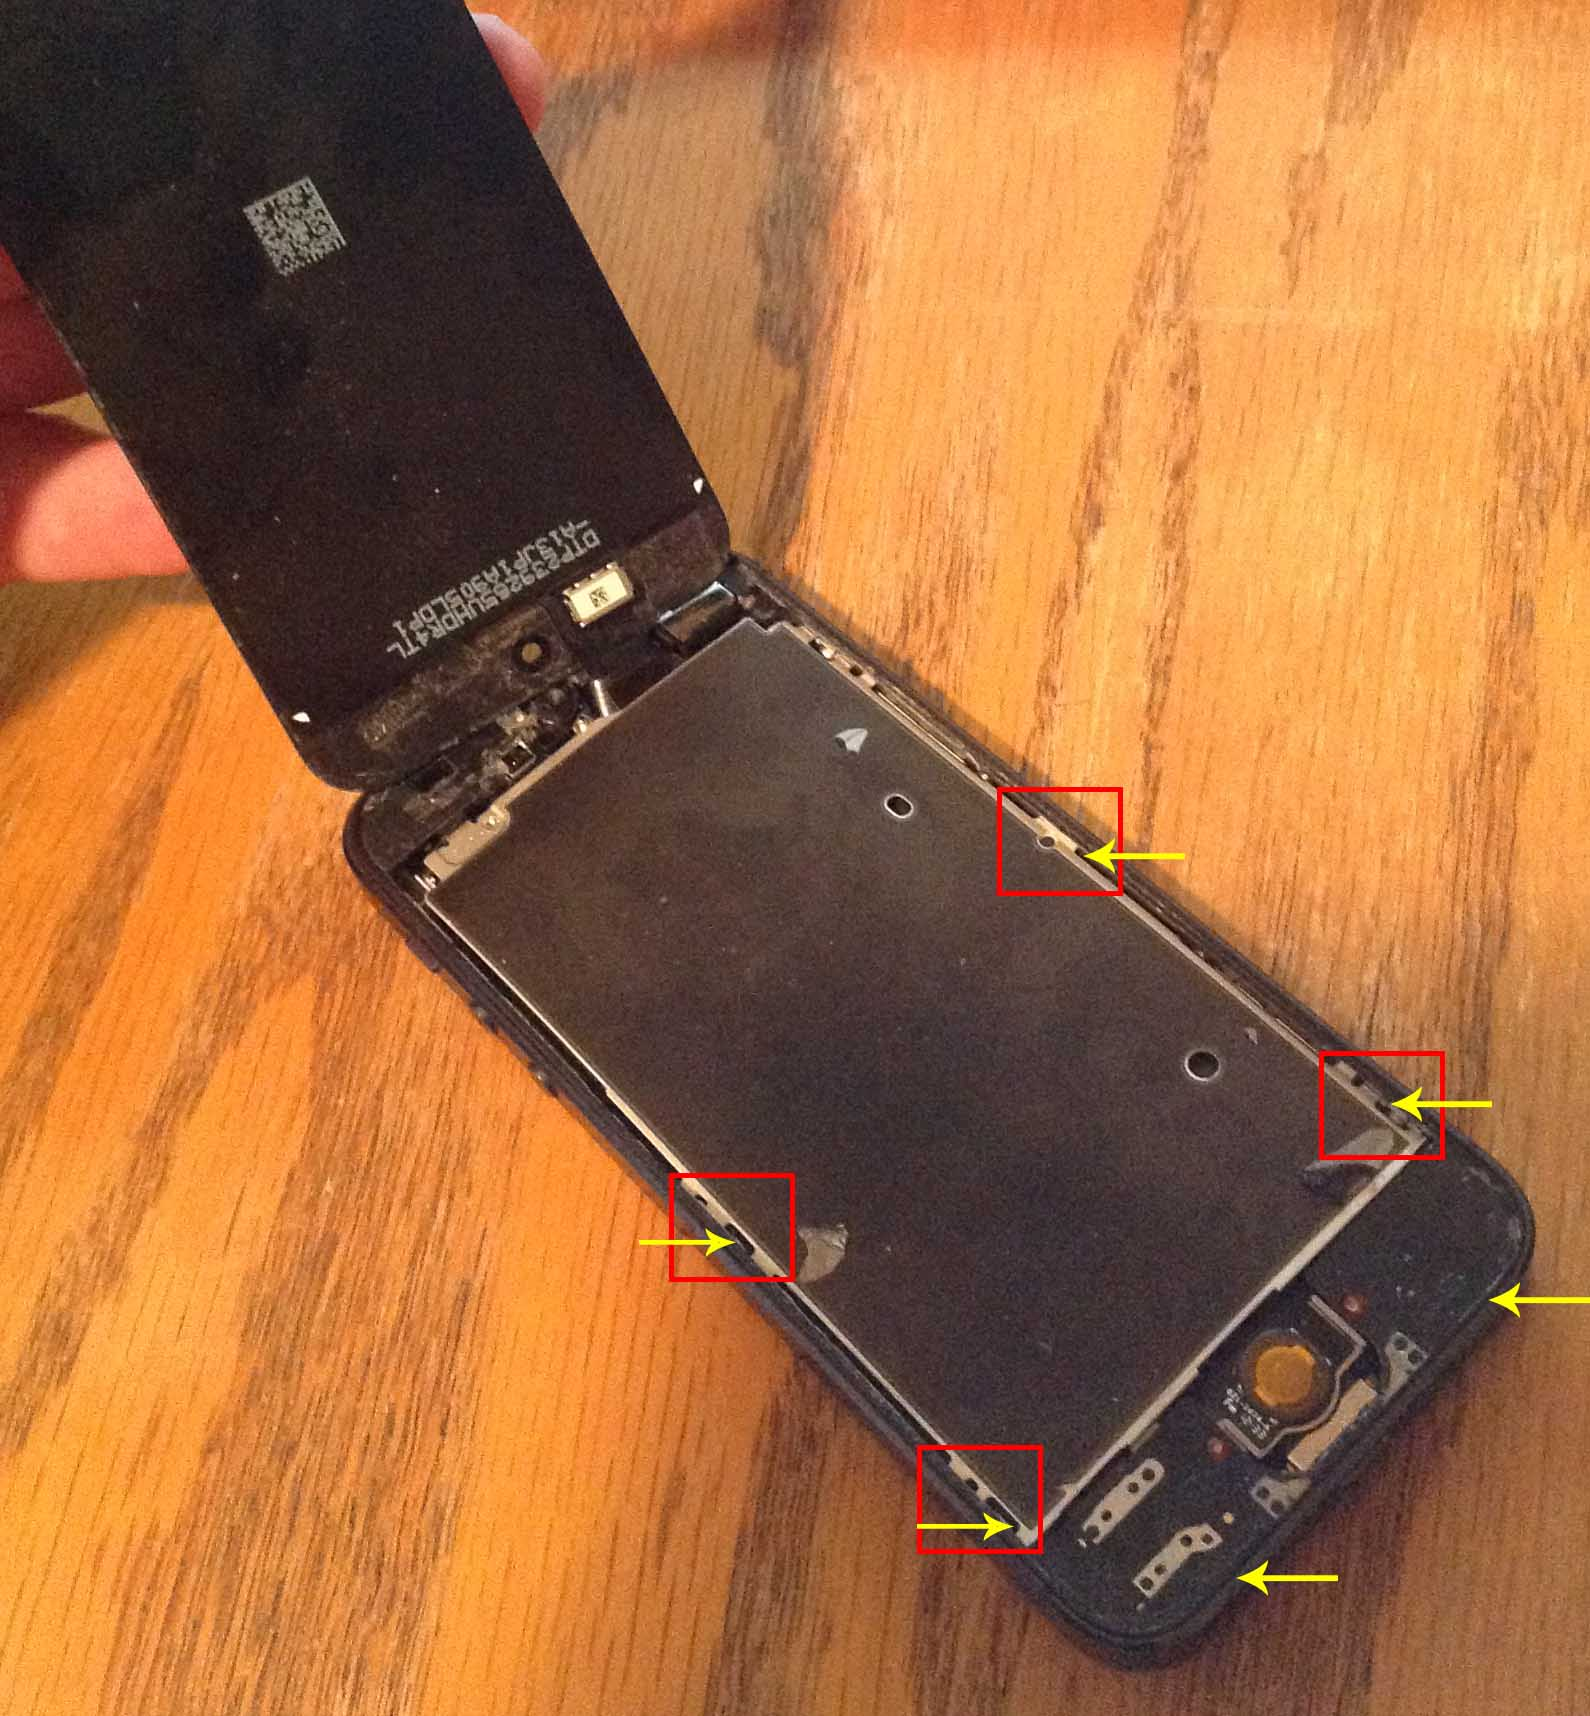 iPhone 5 battery replacement guide - glass separated from the screen assembly.